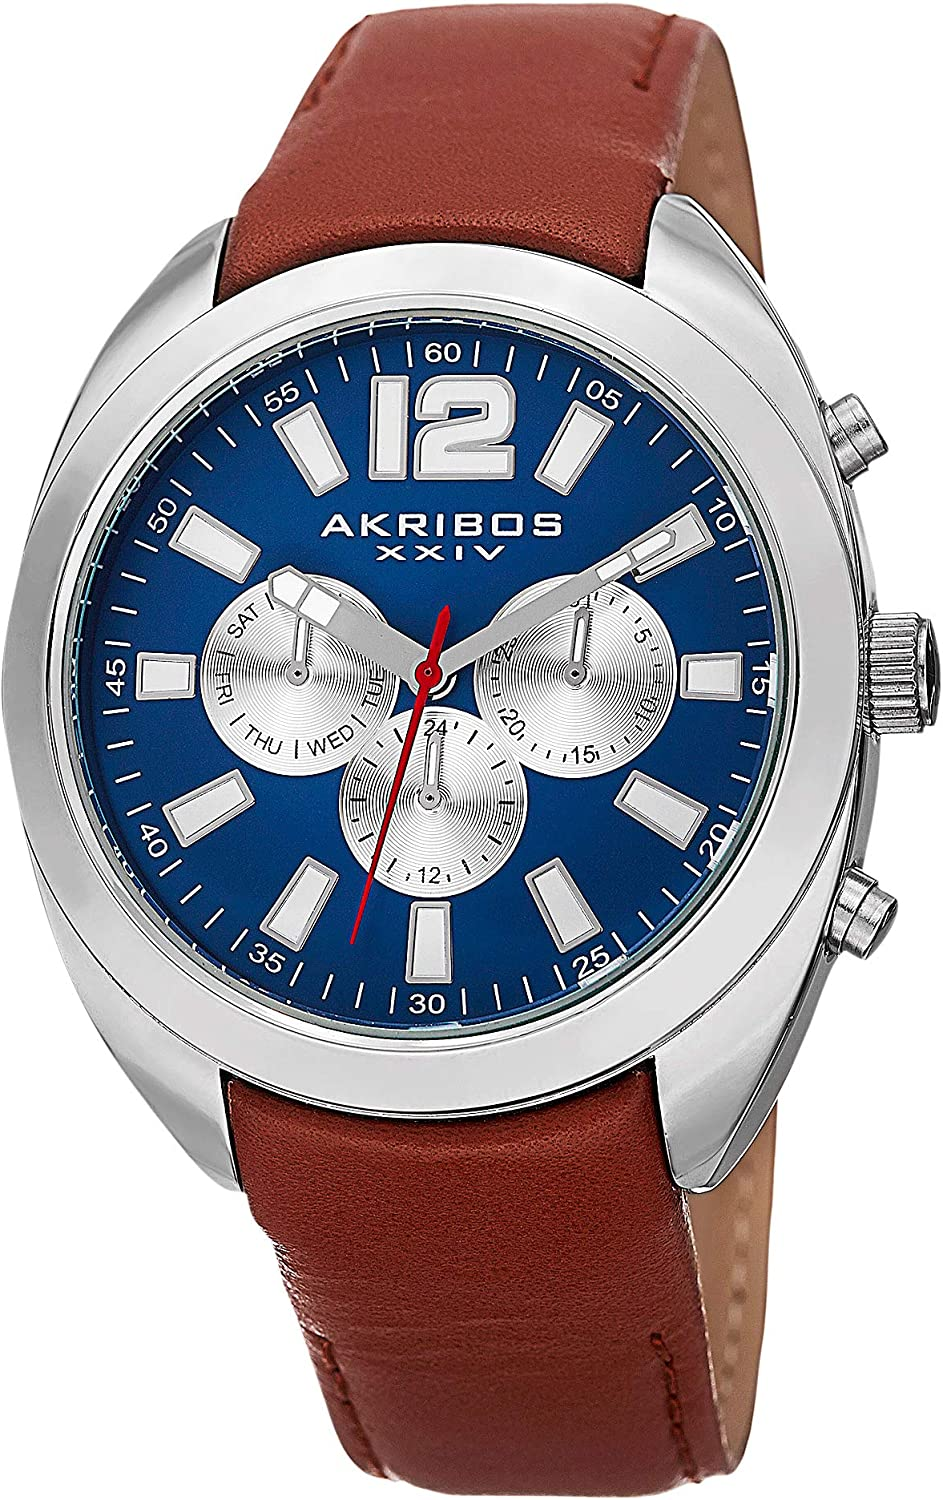 Akribos XXIV Men s Multifunction Watch – 3 Subdials Day, Date, and GMT On Cognac Calfskin Leather Strap – AK777